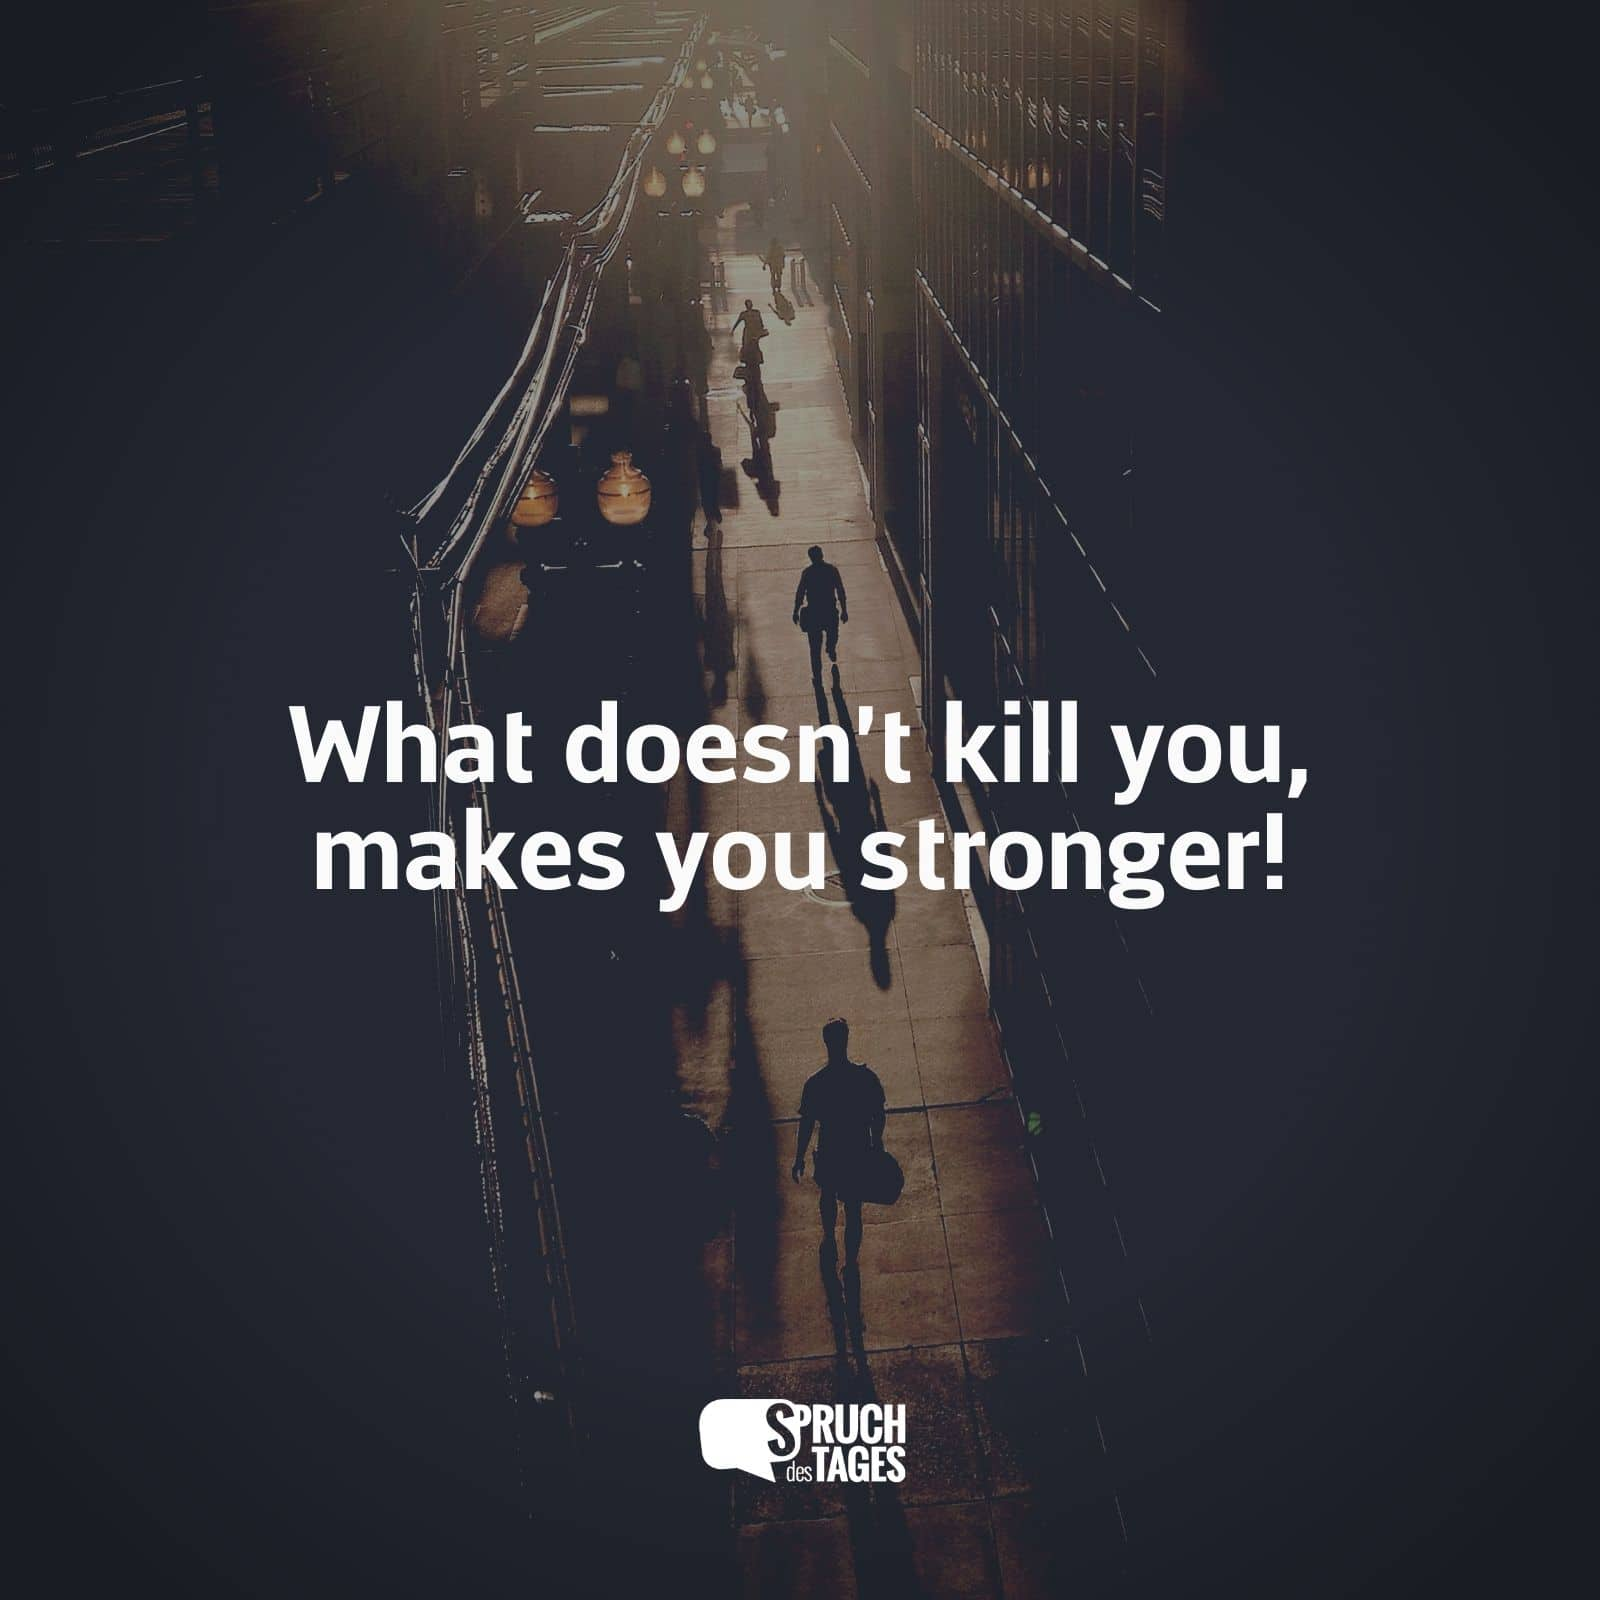 Englische Weihnachtssprüche.What Doesn T Kill You Makes You Stronger